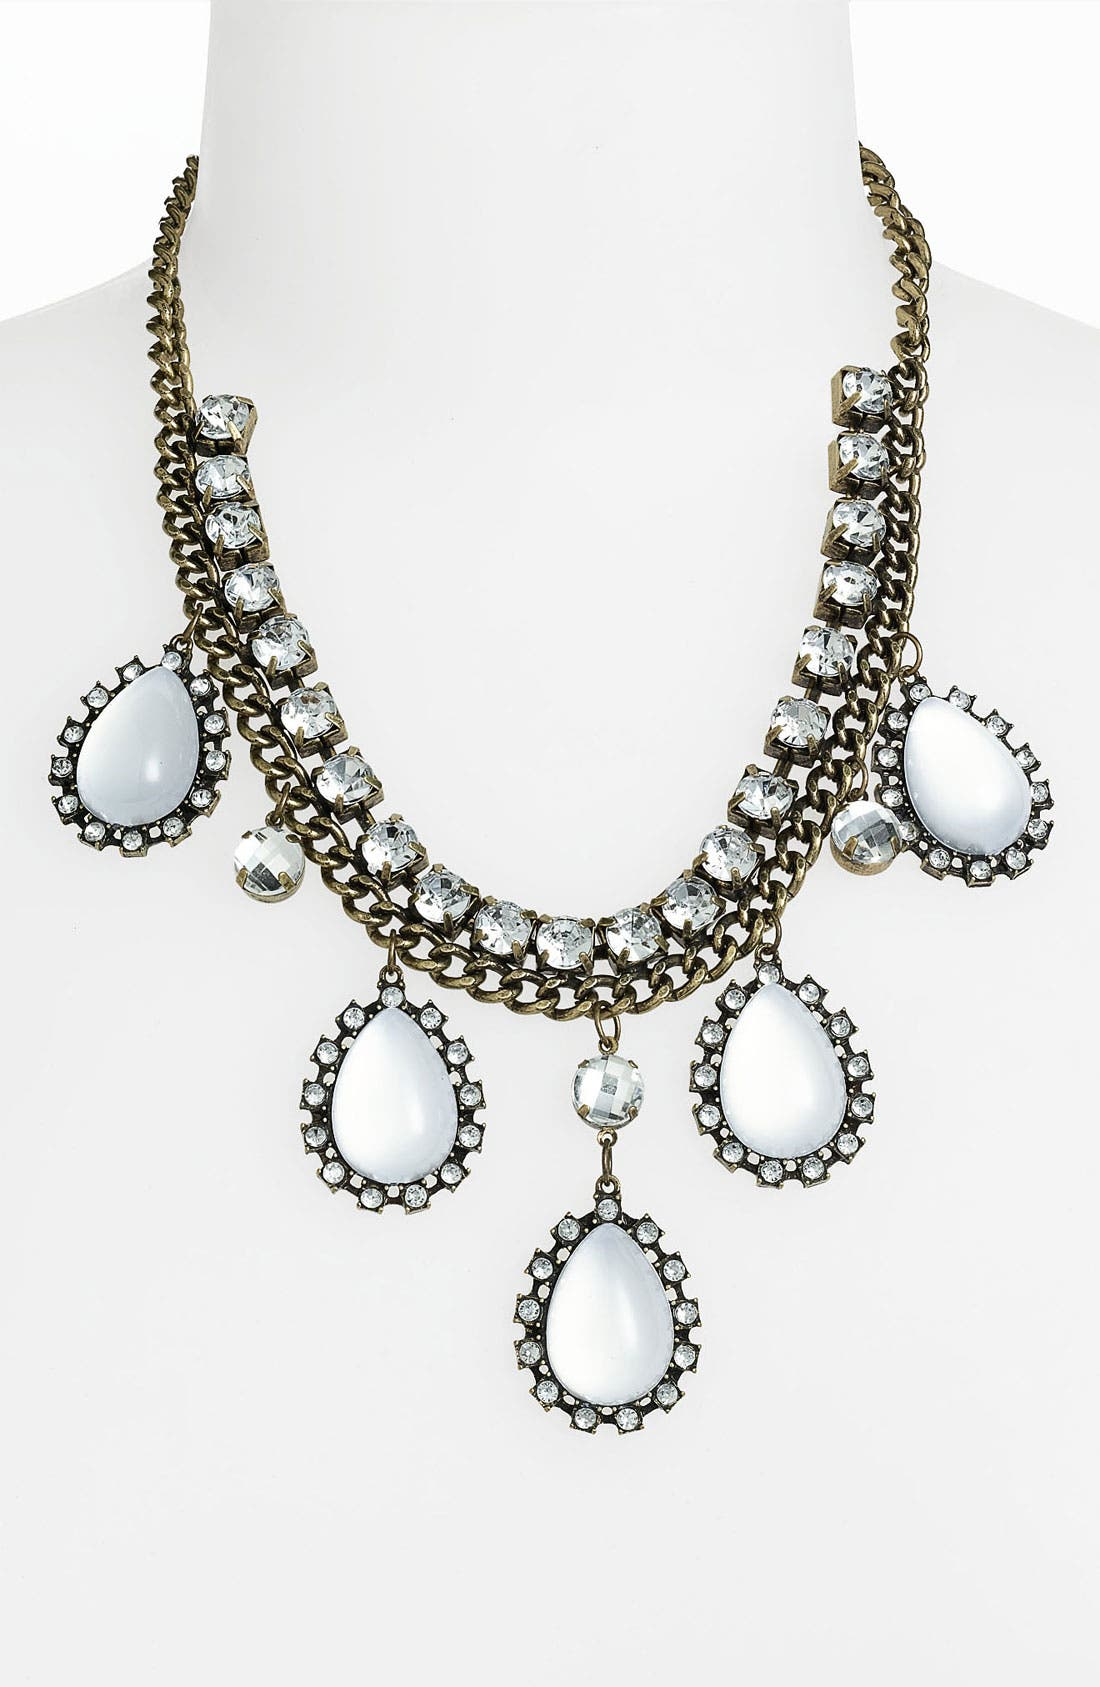 Main Image - Panacea Antique Gold & Crystal Necklace